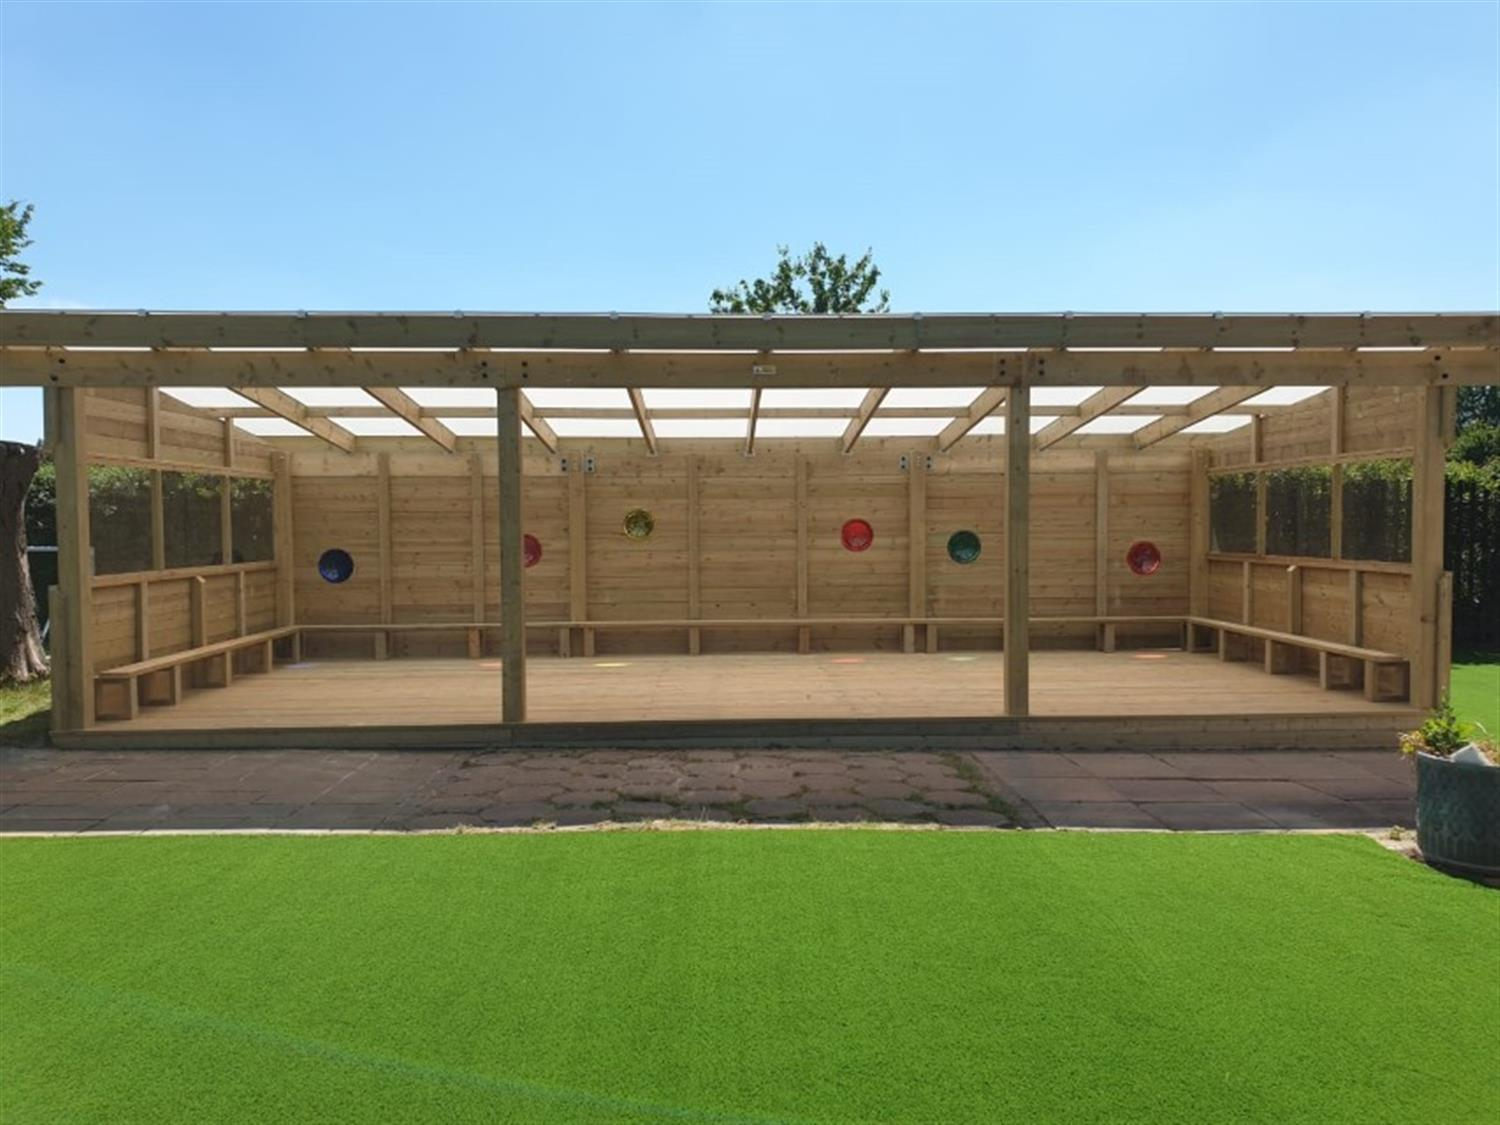 An outdoor classroom on a school playground